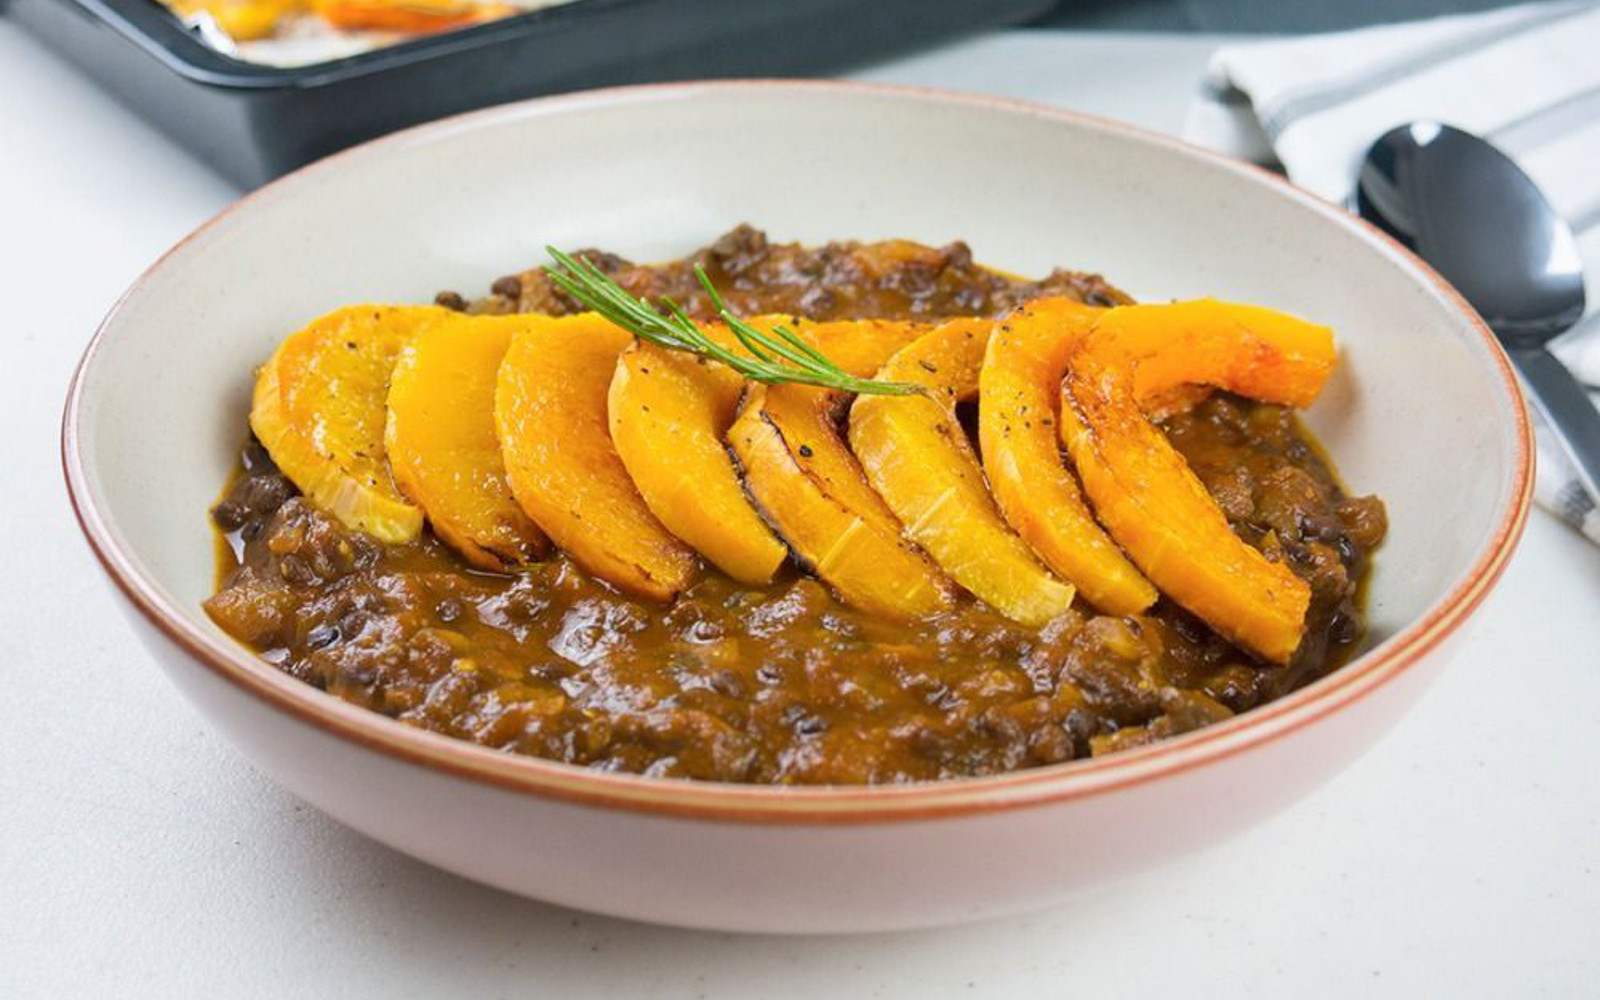 Rosemary Roasted Butternut Squash With Lentil, Tomato, and Mushroom Sauce